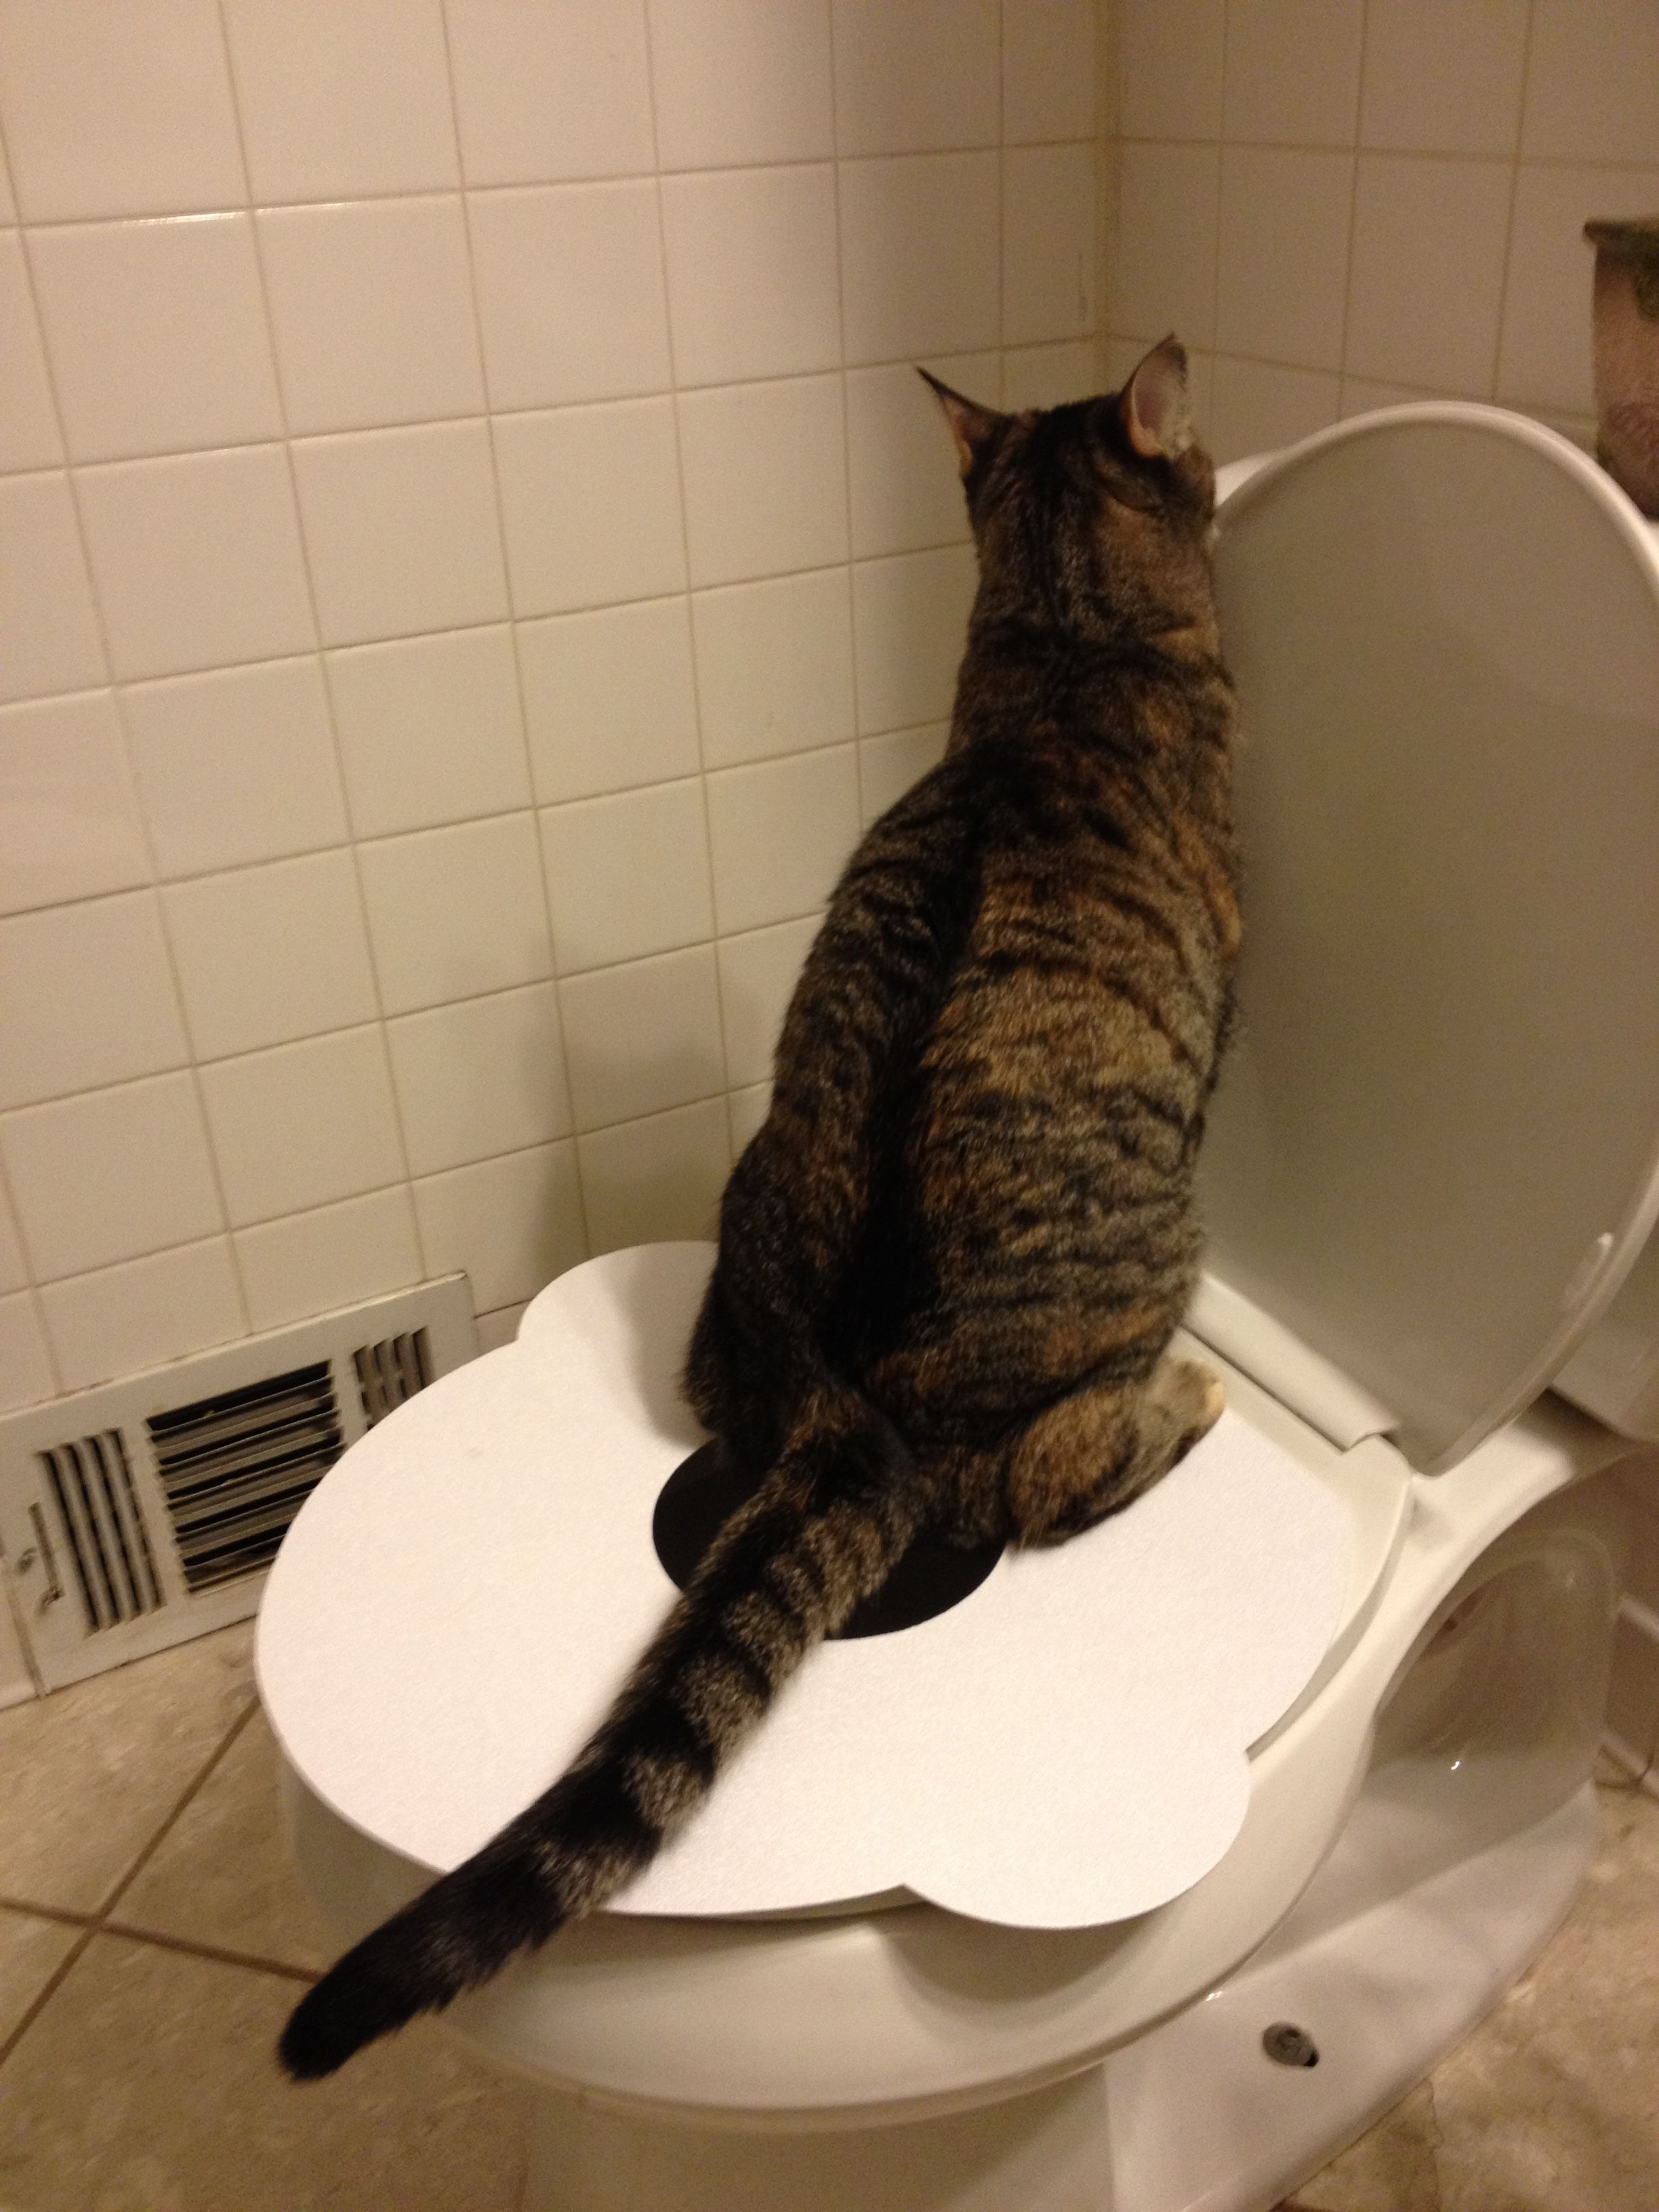 The Purrfect Potty, NO MORE LITTER! cats catproducts